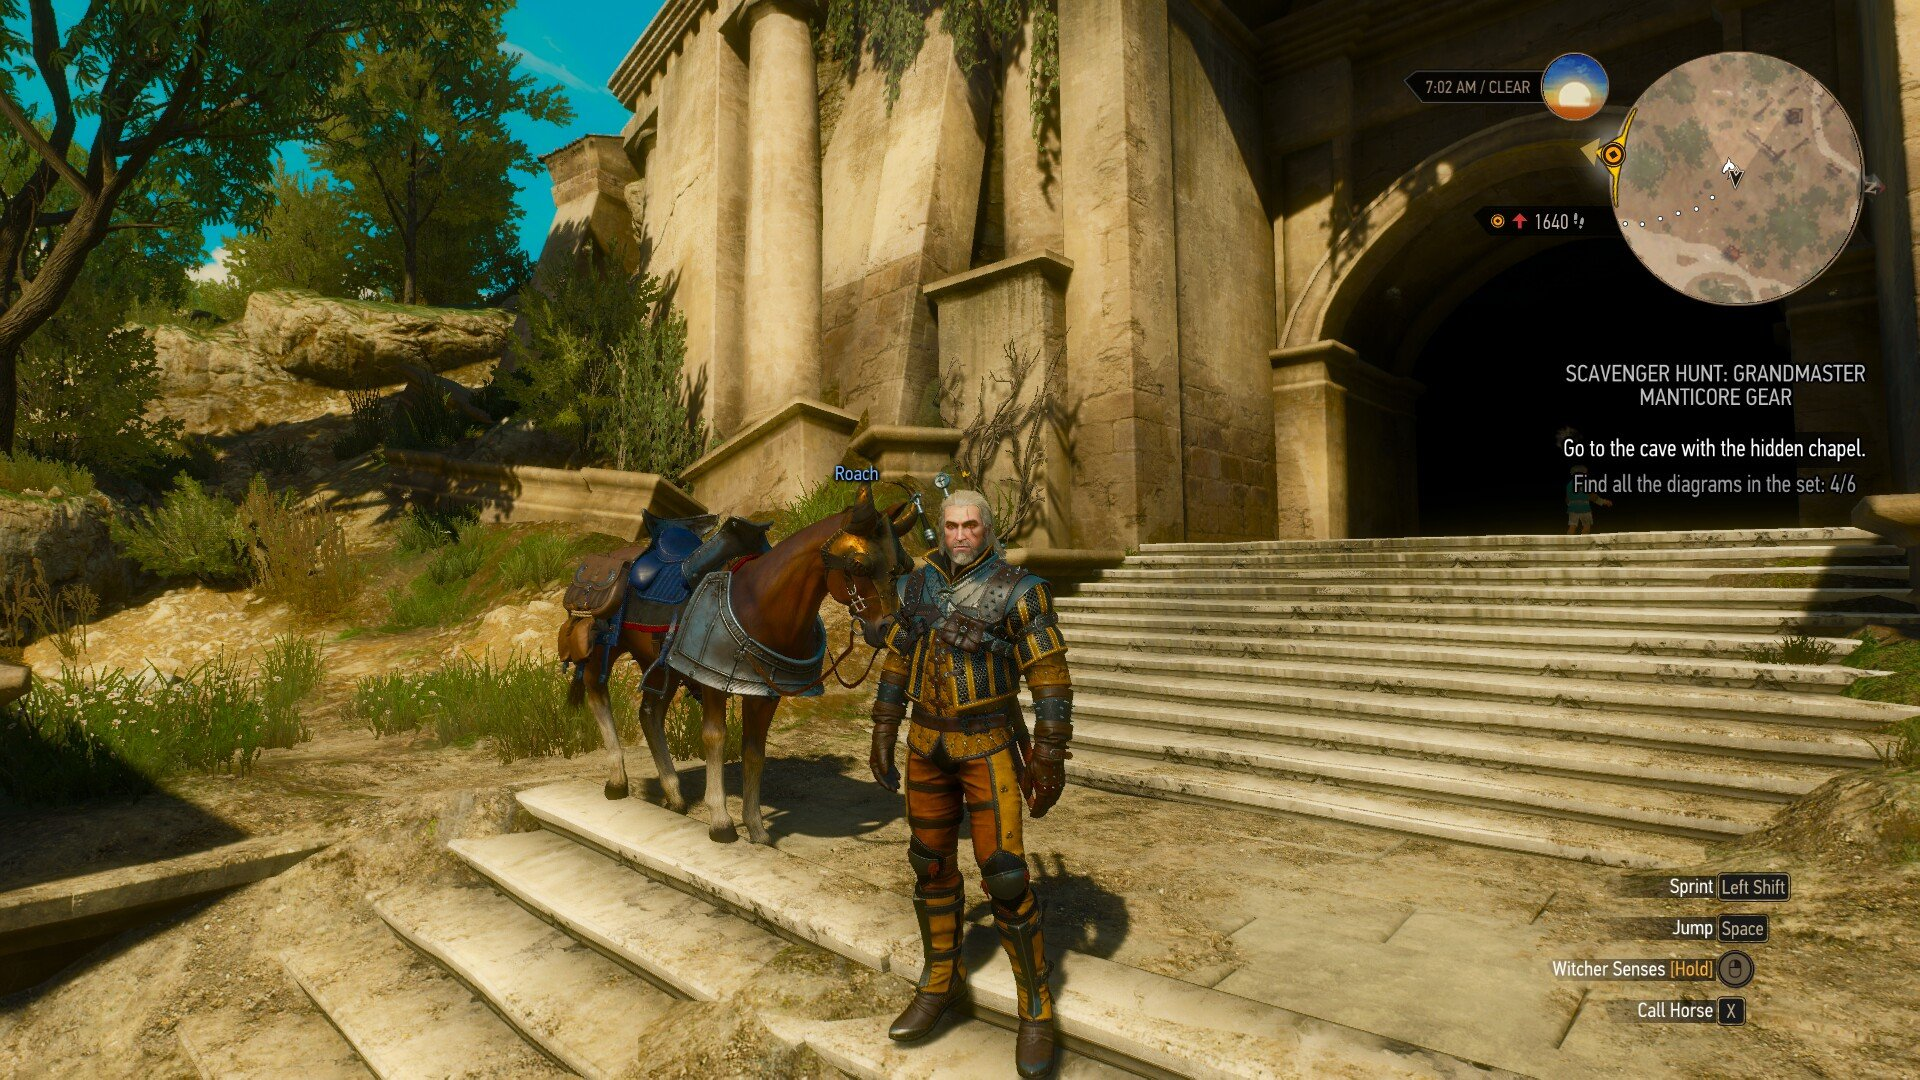 Witcher 3 armor dyes